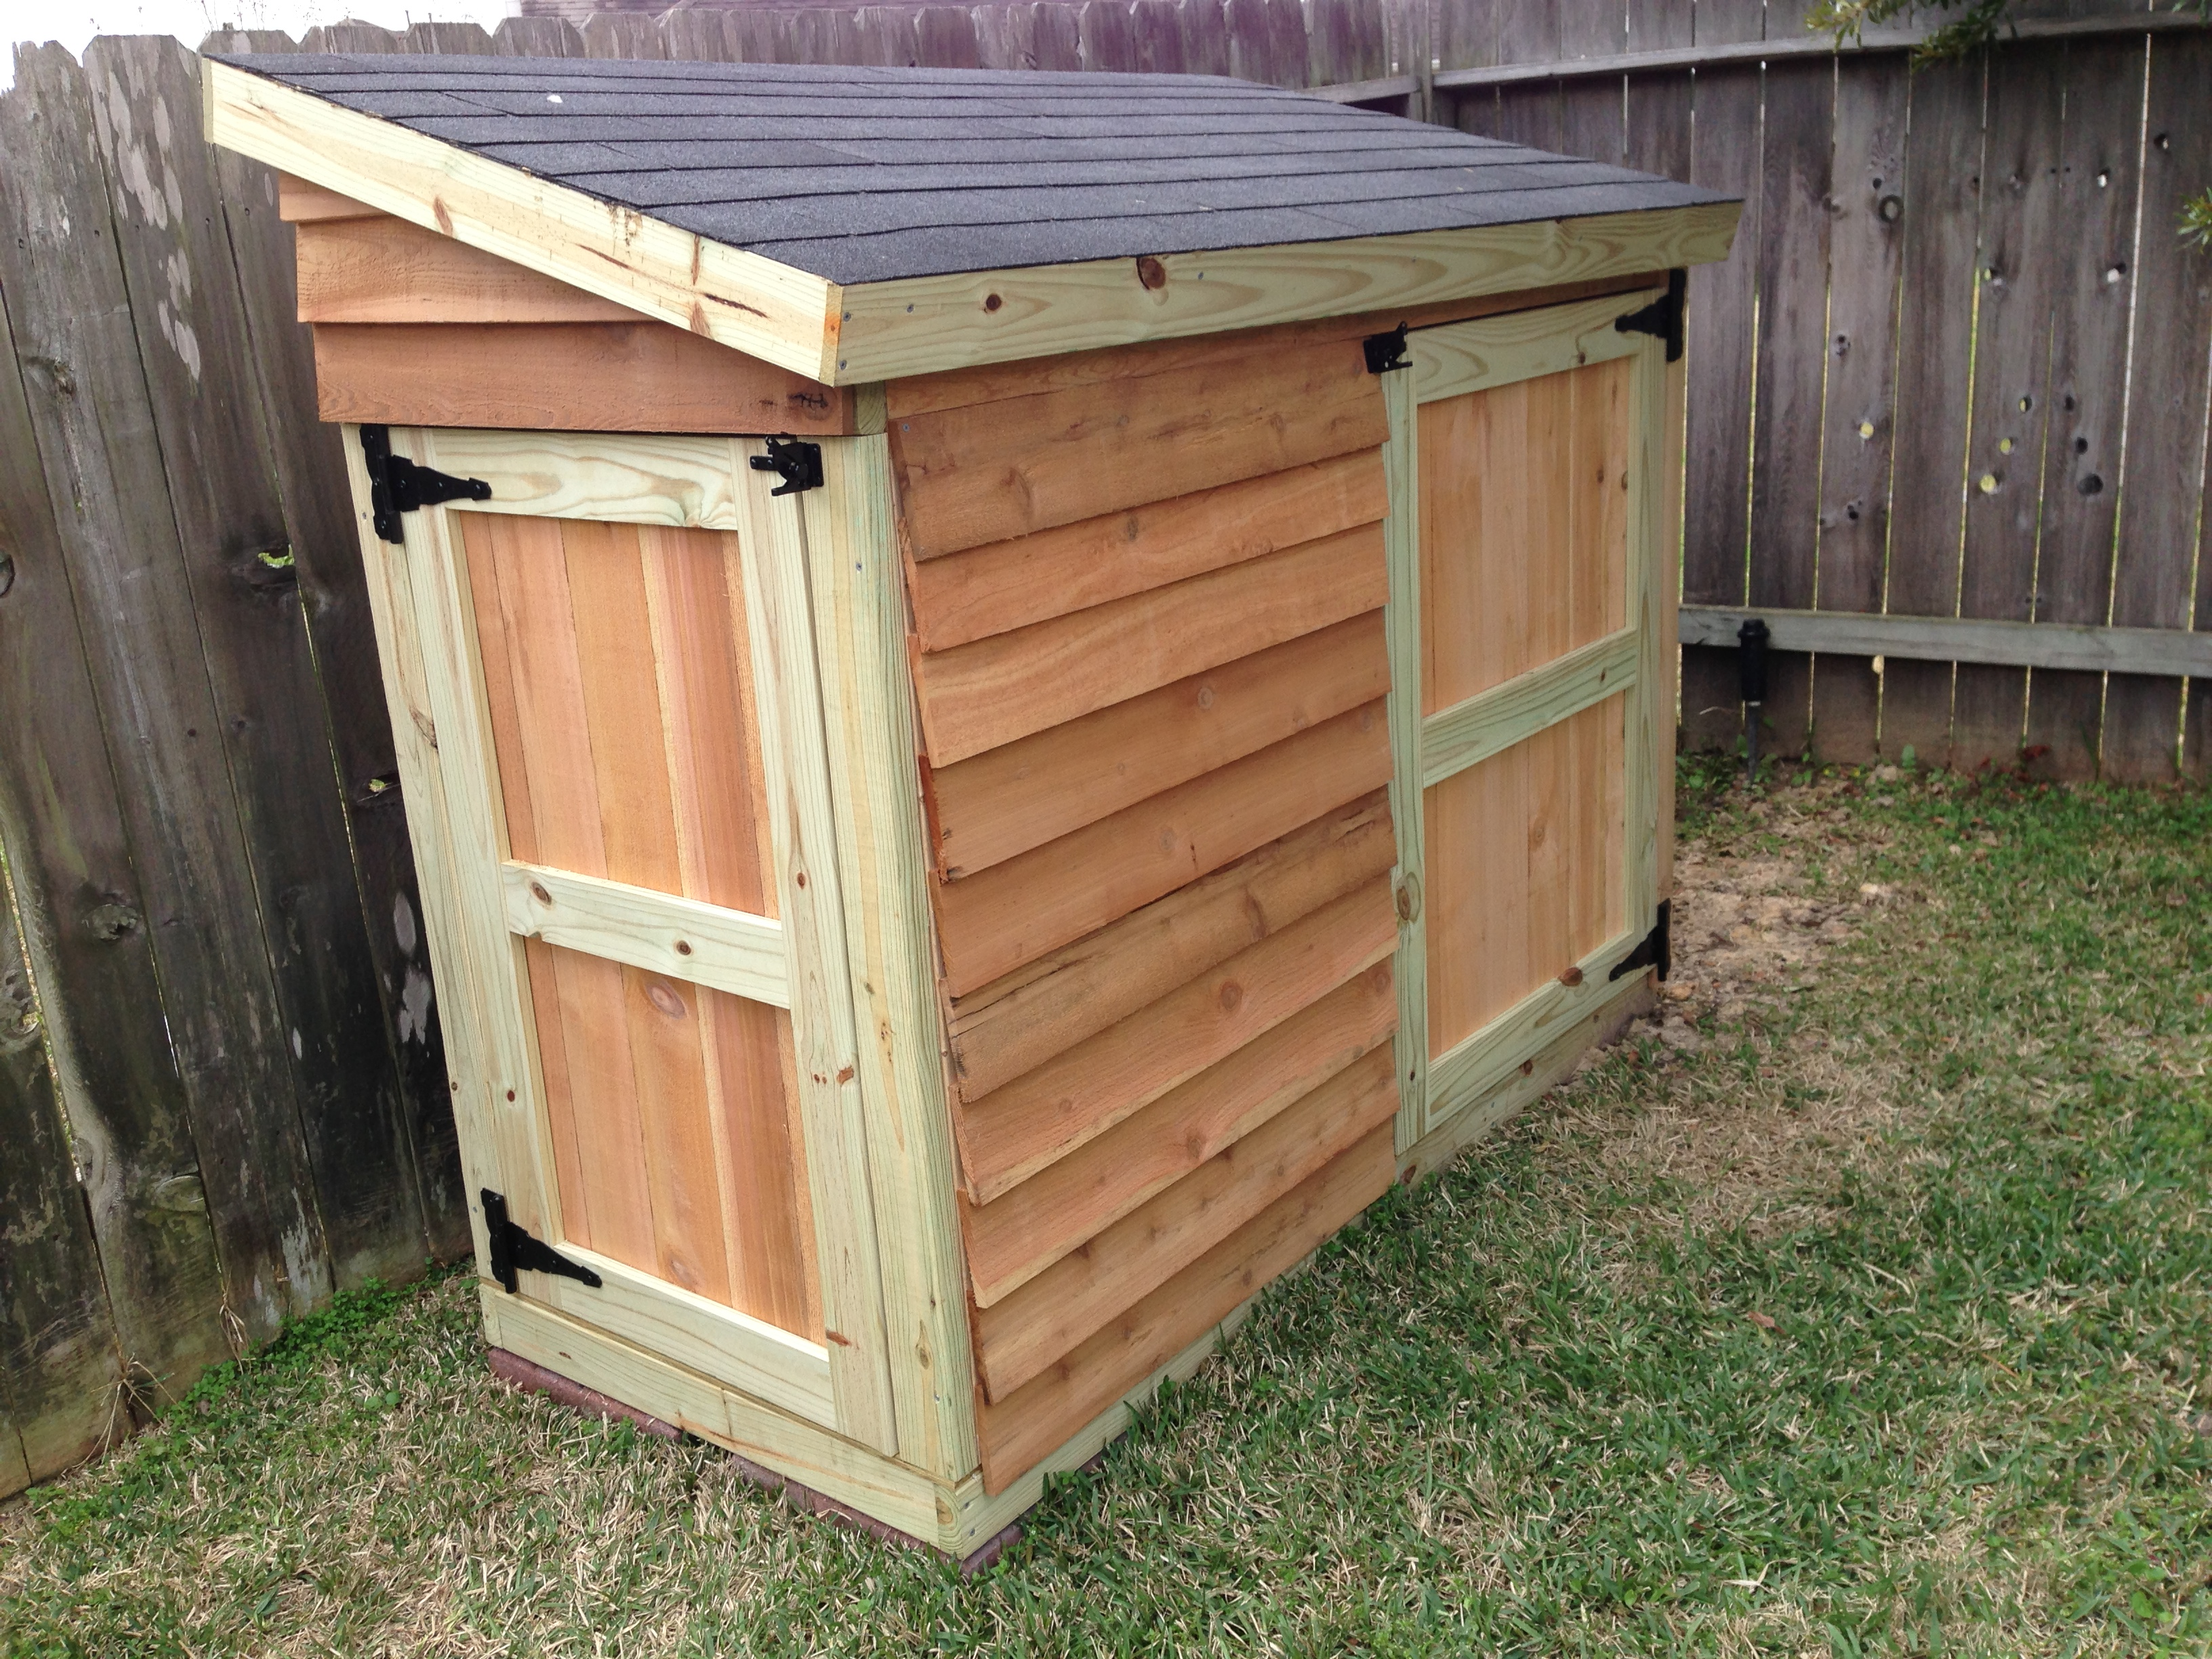 Lawnmower Shed & Ana White | Lawnmower Shed - DIY Projects